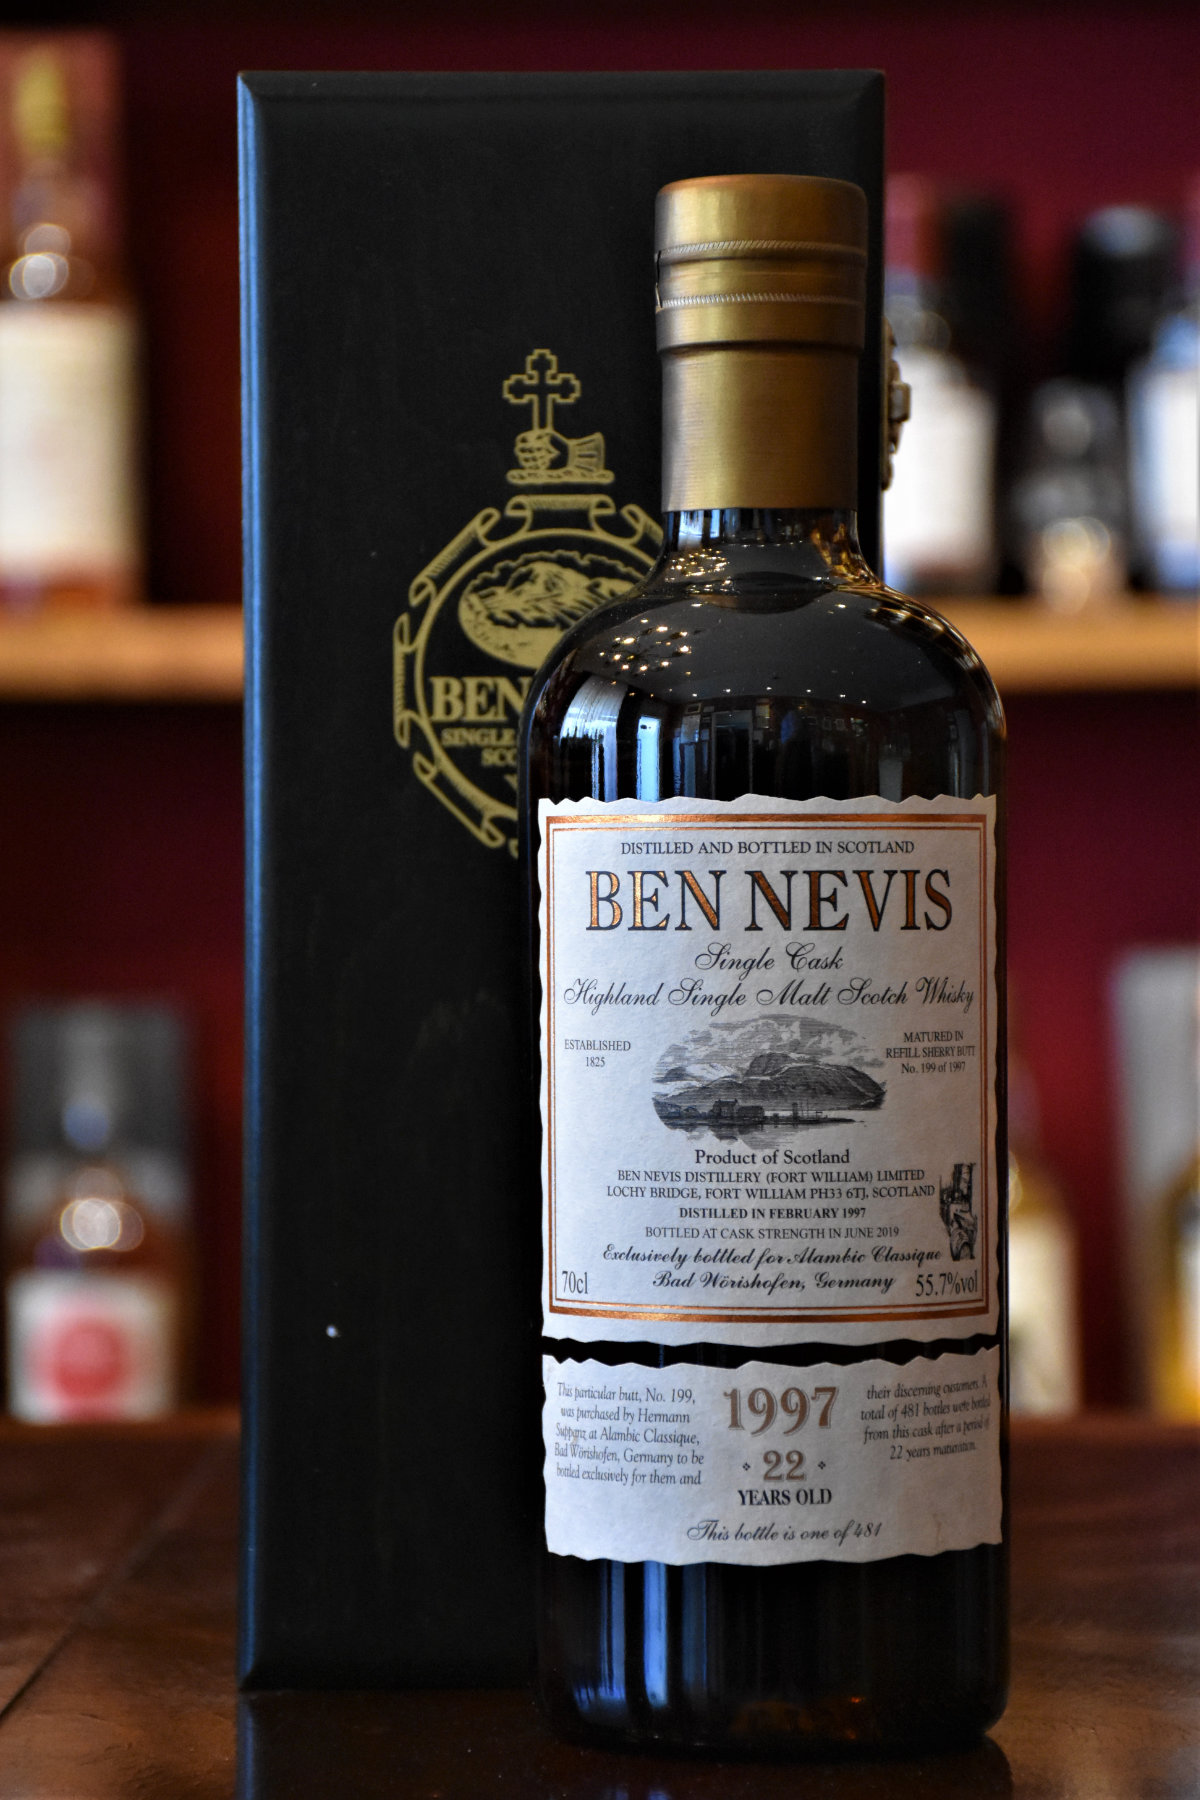 Ben Nevis 1997, 22 y.o. - Refill Sherry Butt, Cask No. 19, 55,7% Alc.Vol., Alambic